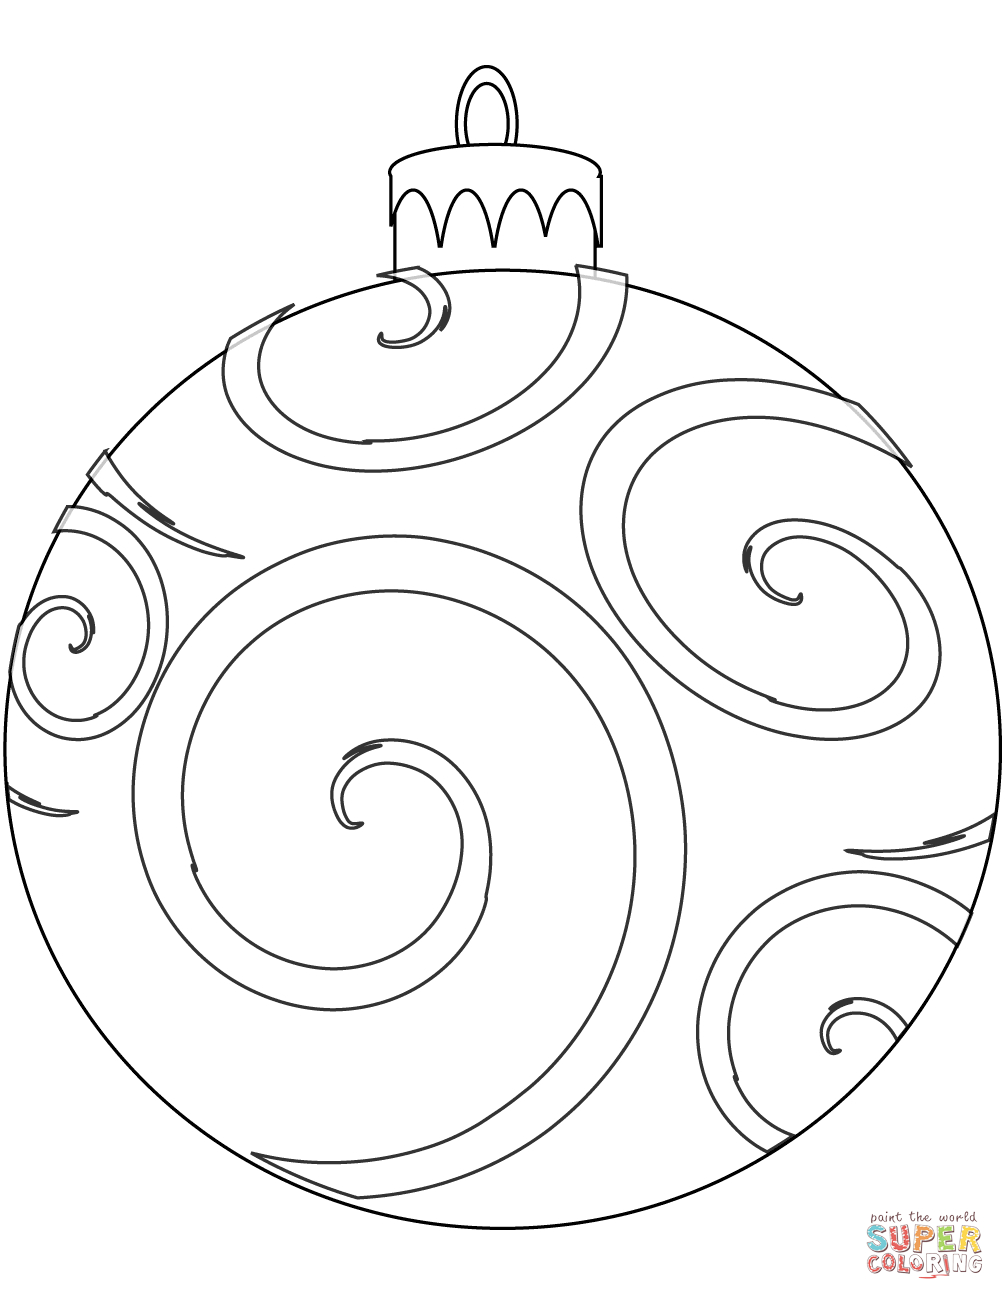 Holiday Ornament Coloring Page | Free Printable Coloring Pages - Free Printable Ornaments To Color